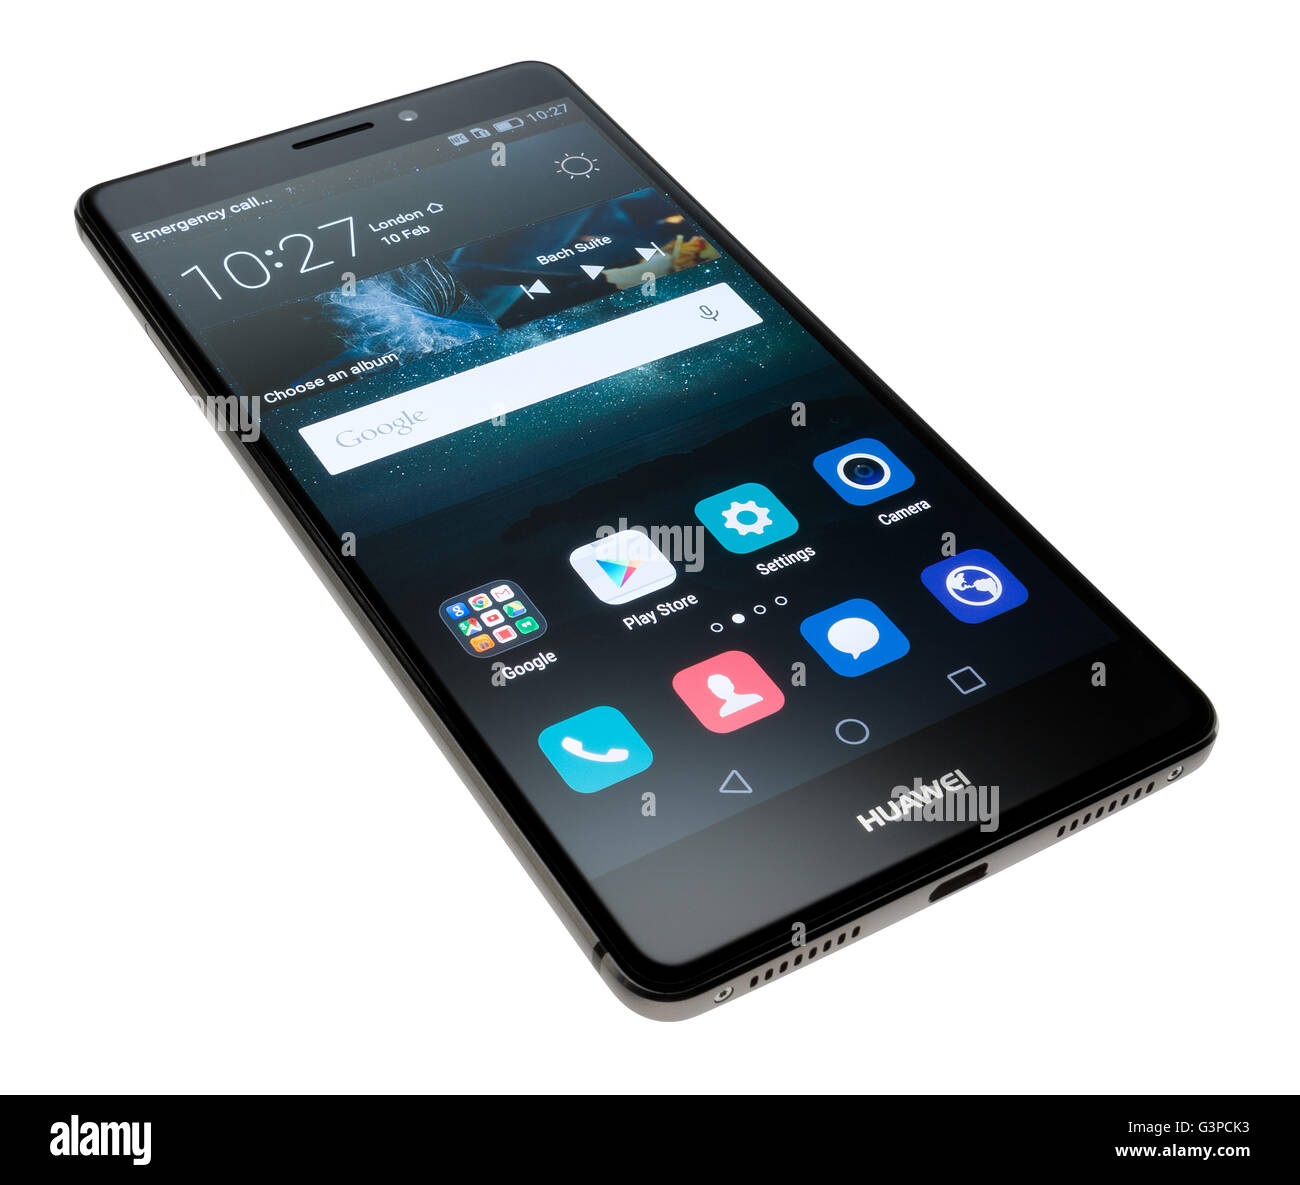 Huawei Mate S mobile phone or cellphone. Screen showing icons. - Stock Image